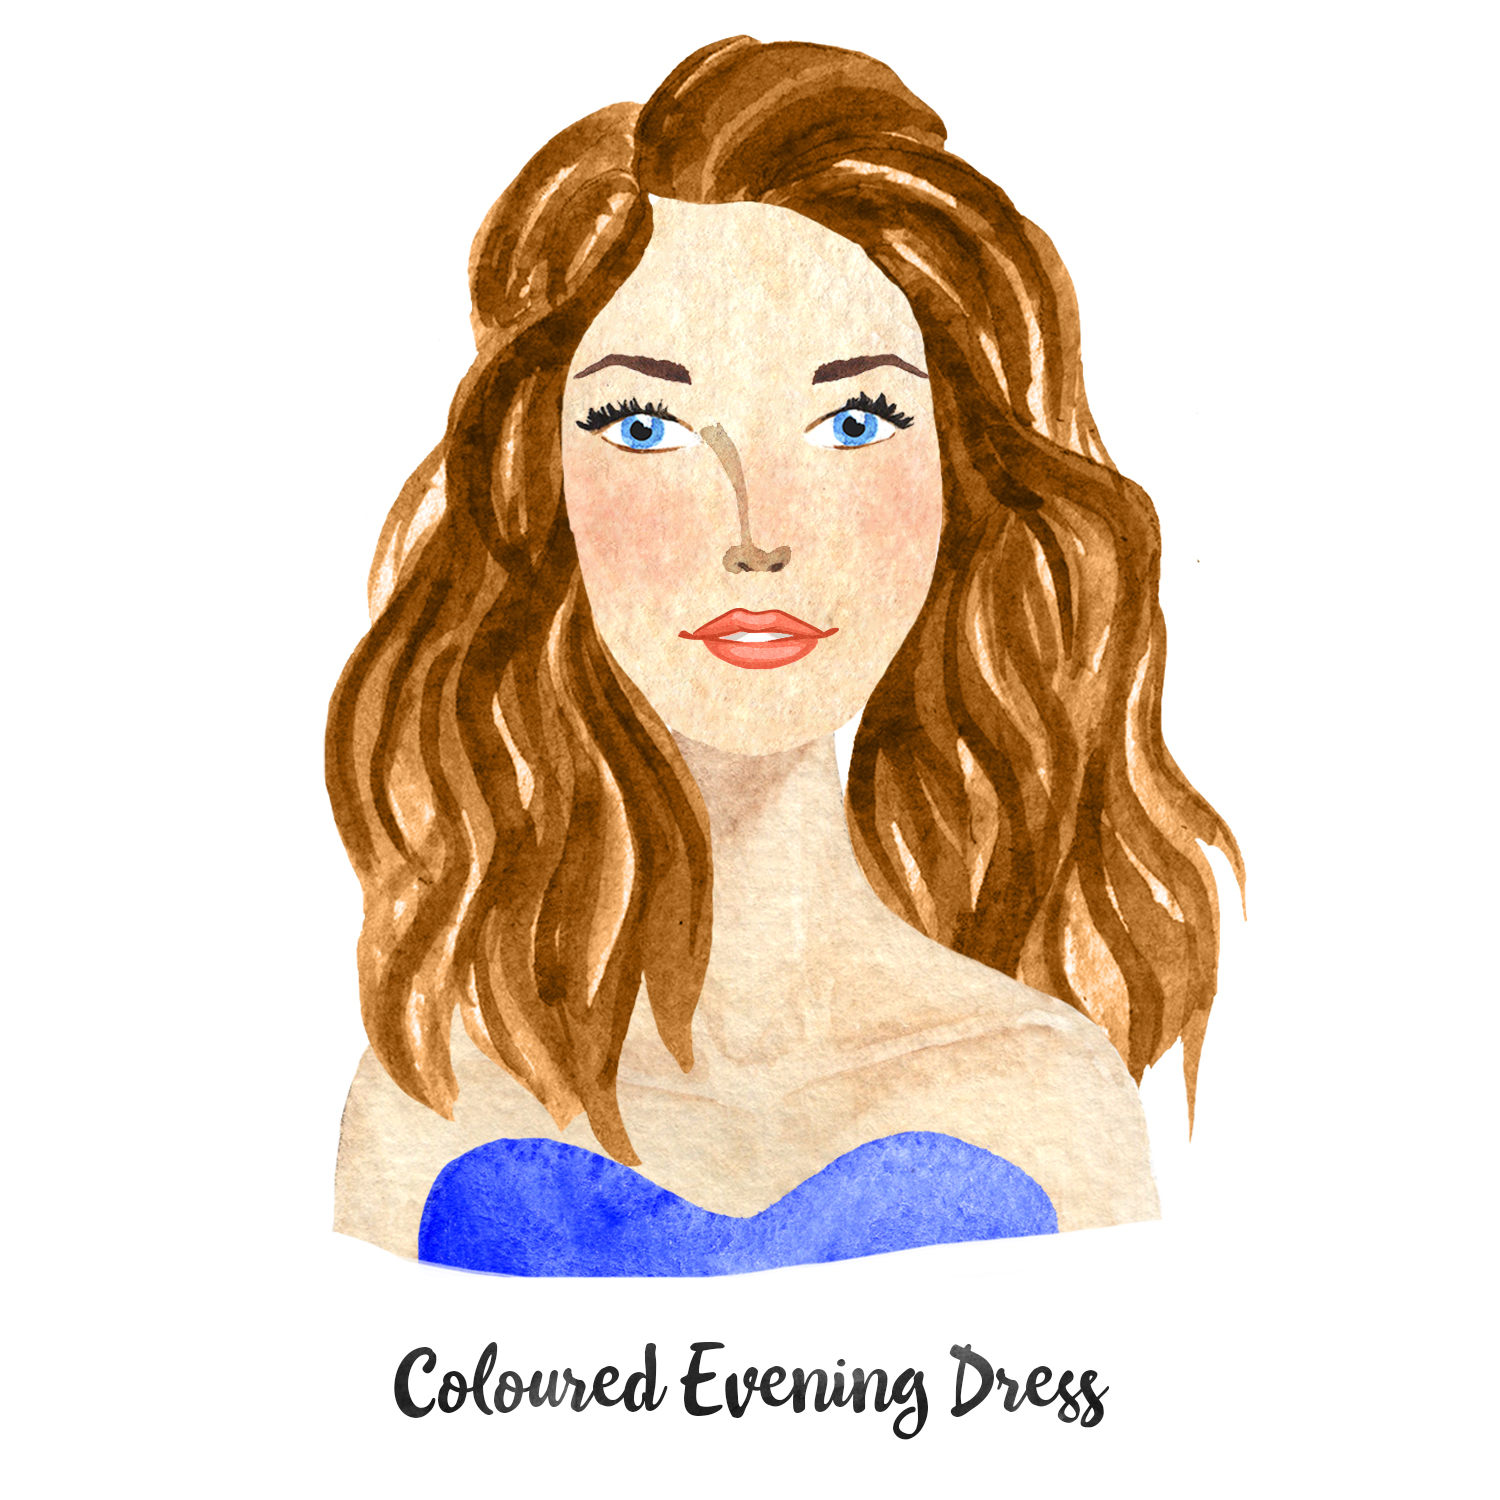 Coloured Evening Dress.jpg